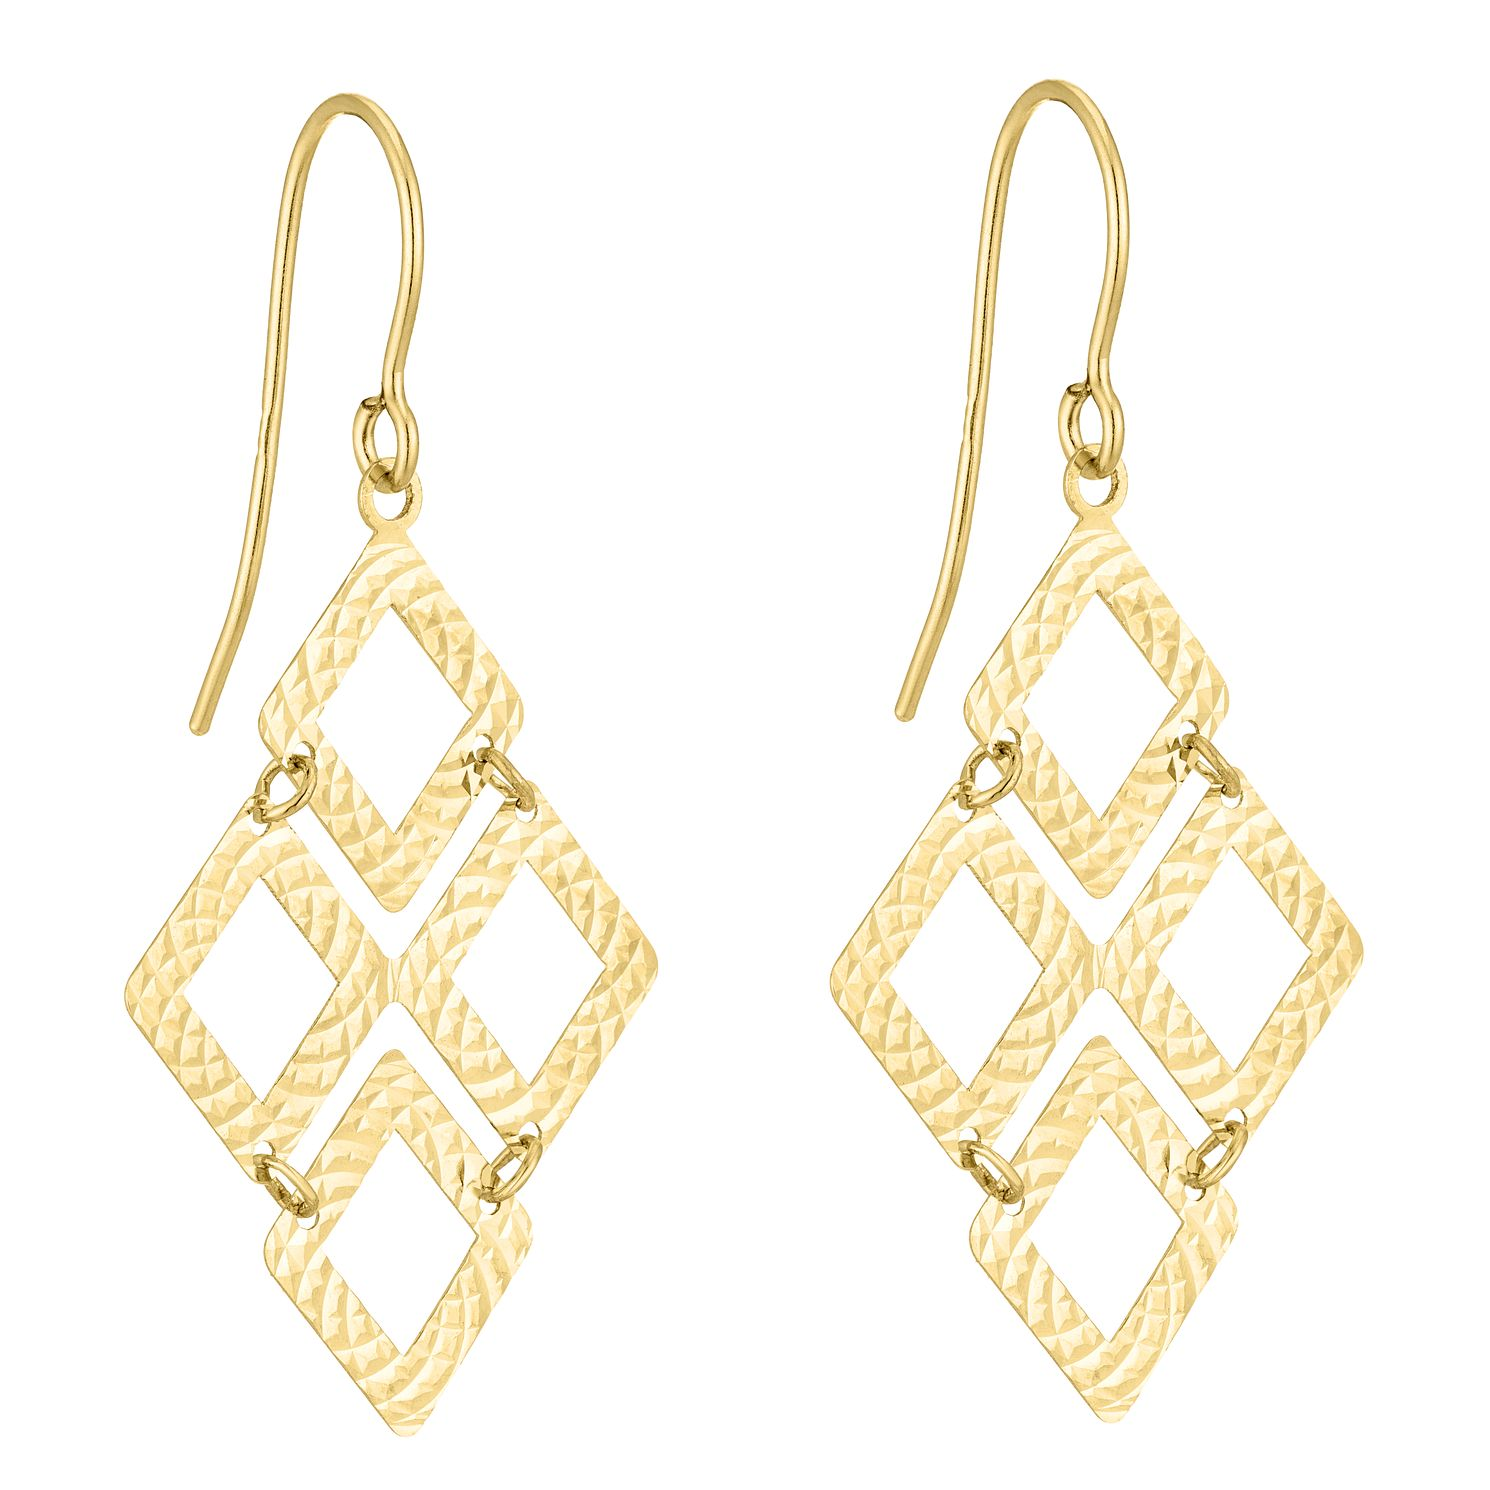 9ct Yellow Gold Diamond-Cut Geo Chandelier Drop Earrings - Product number 5088216